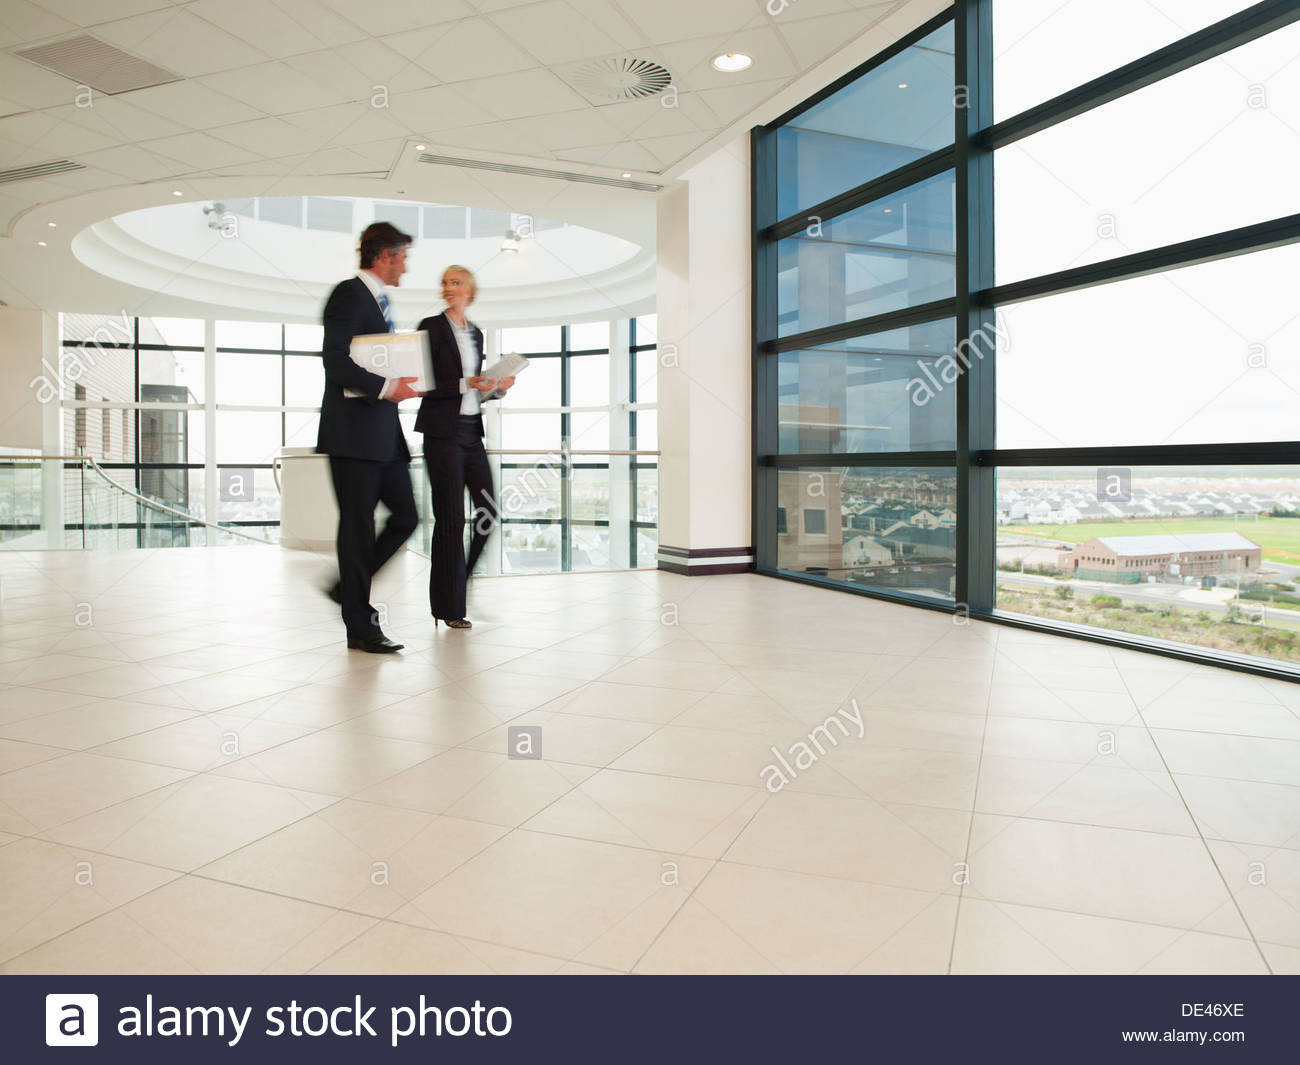 Business people walking through office lobby - Stock Image